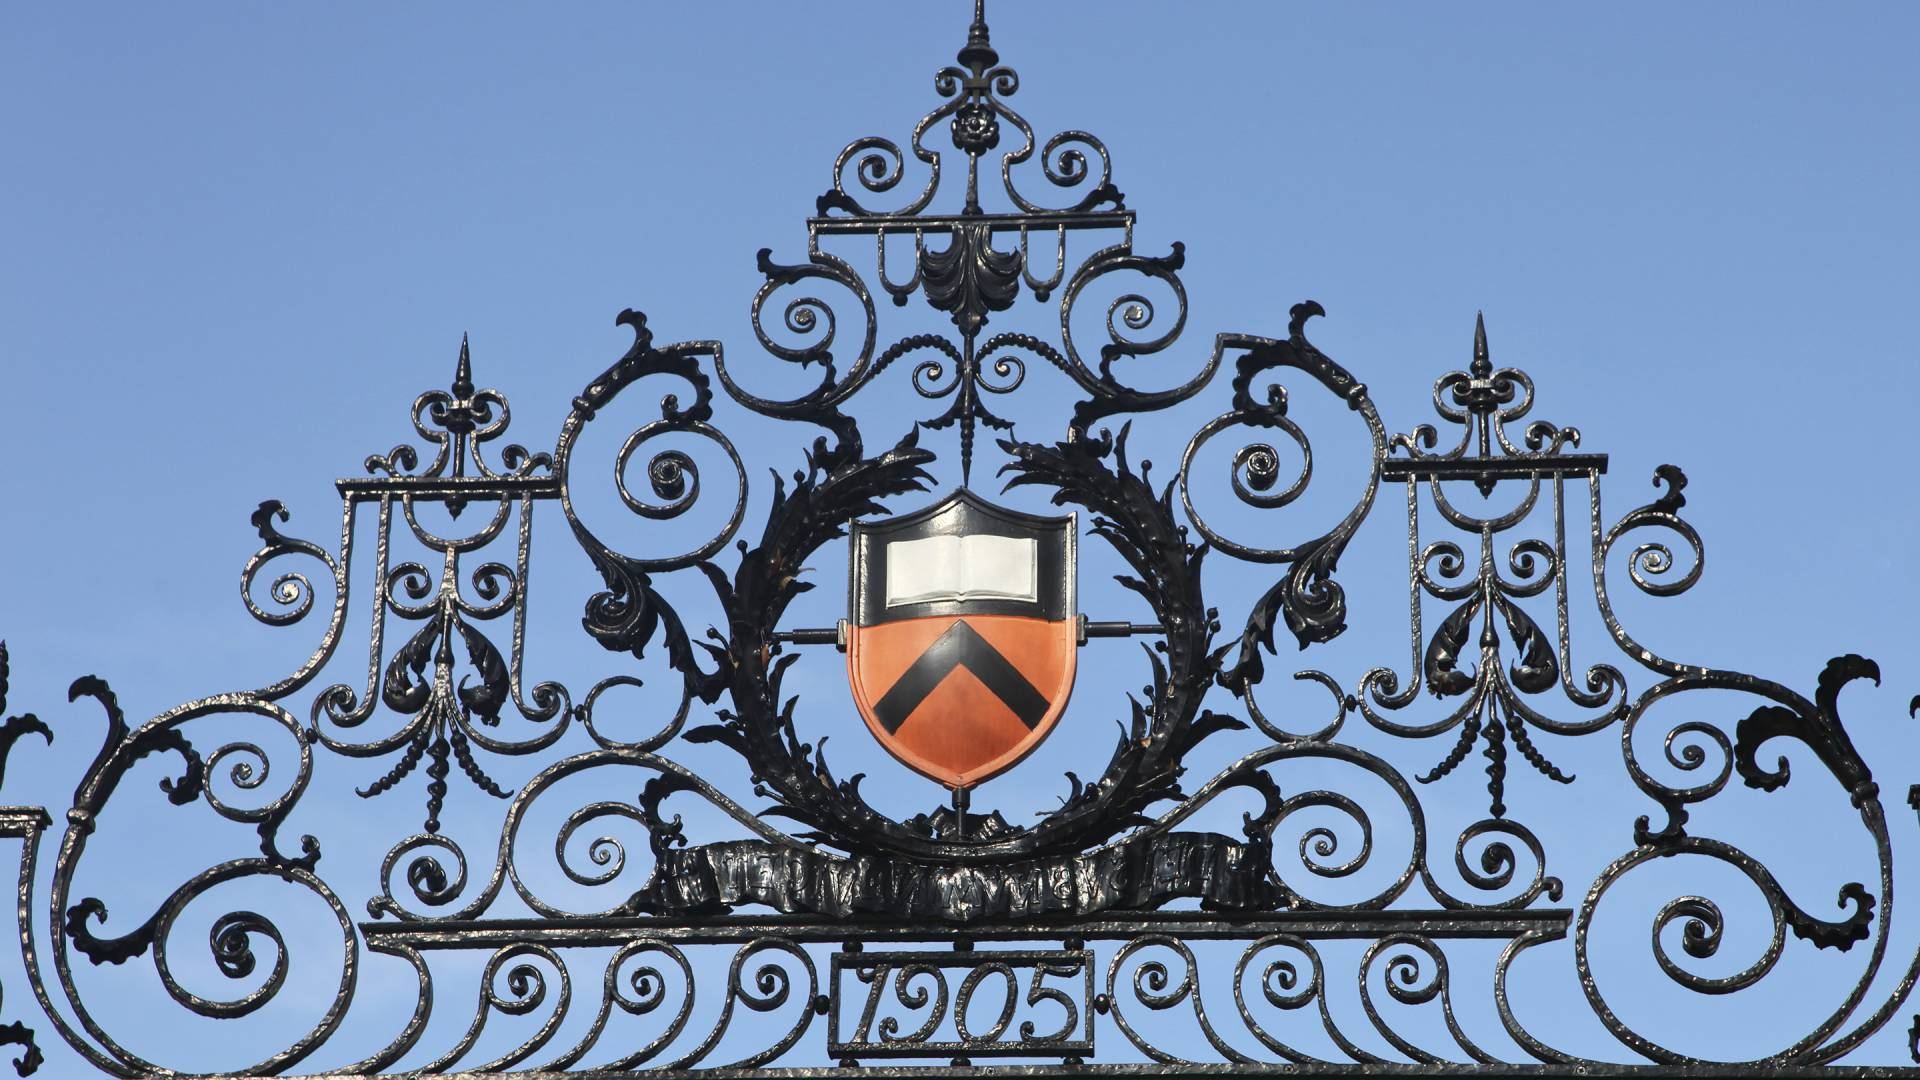 Princeton University to welcome back Class of 2020 in Spring 2021